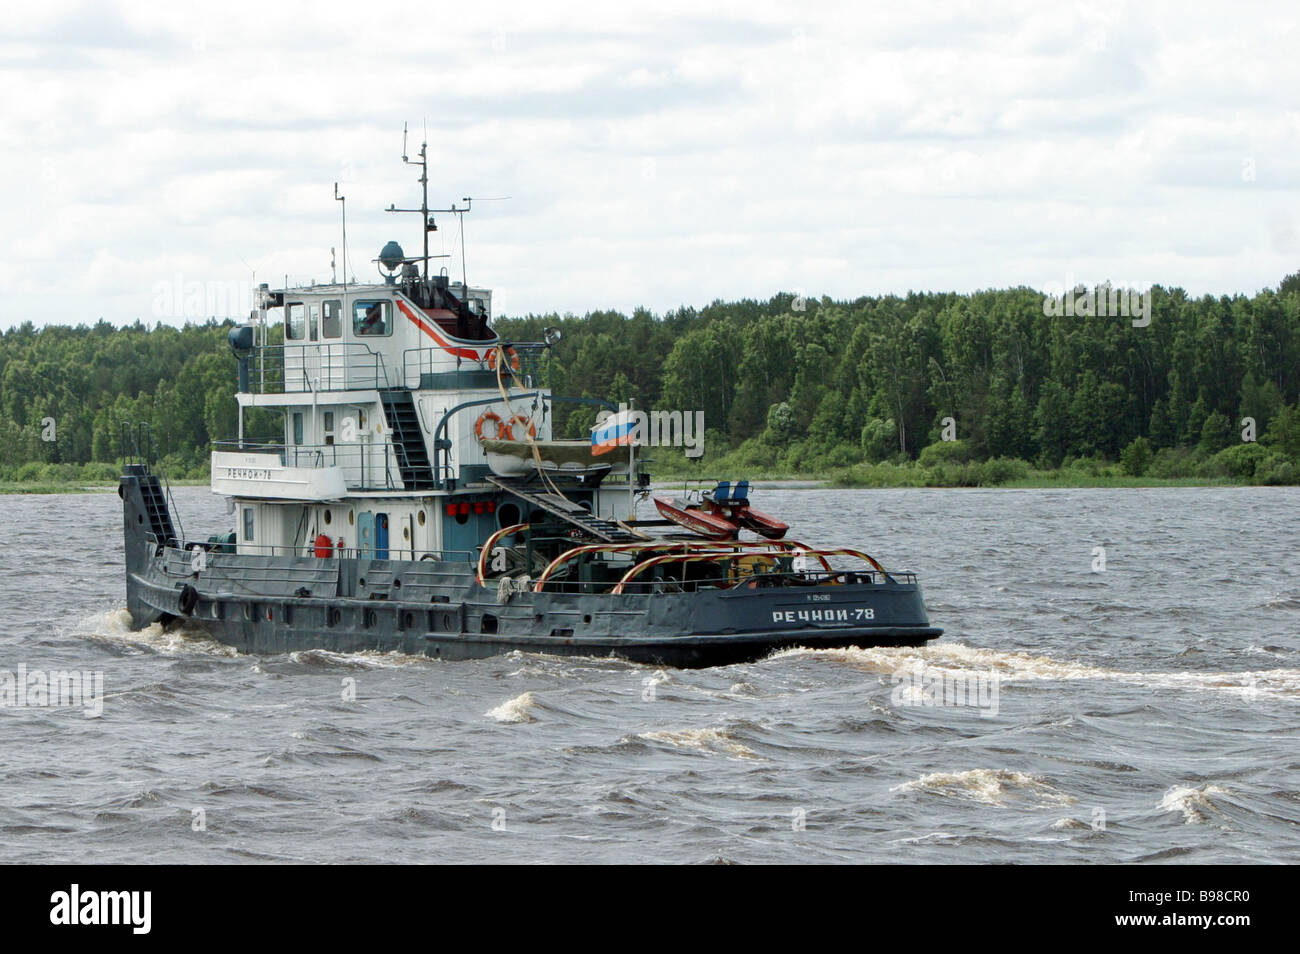 River tow boat on the Volga River - Stock Image